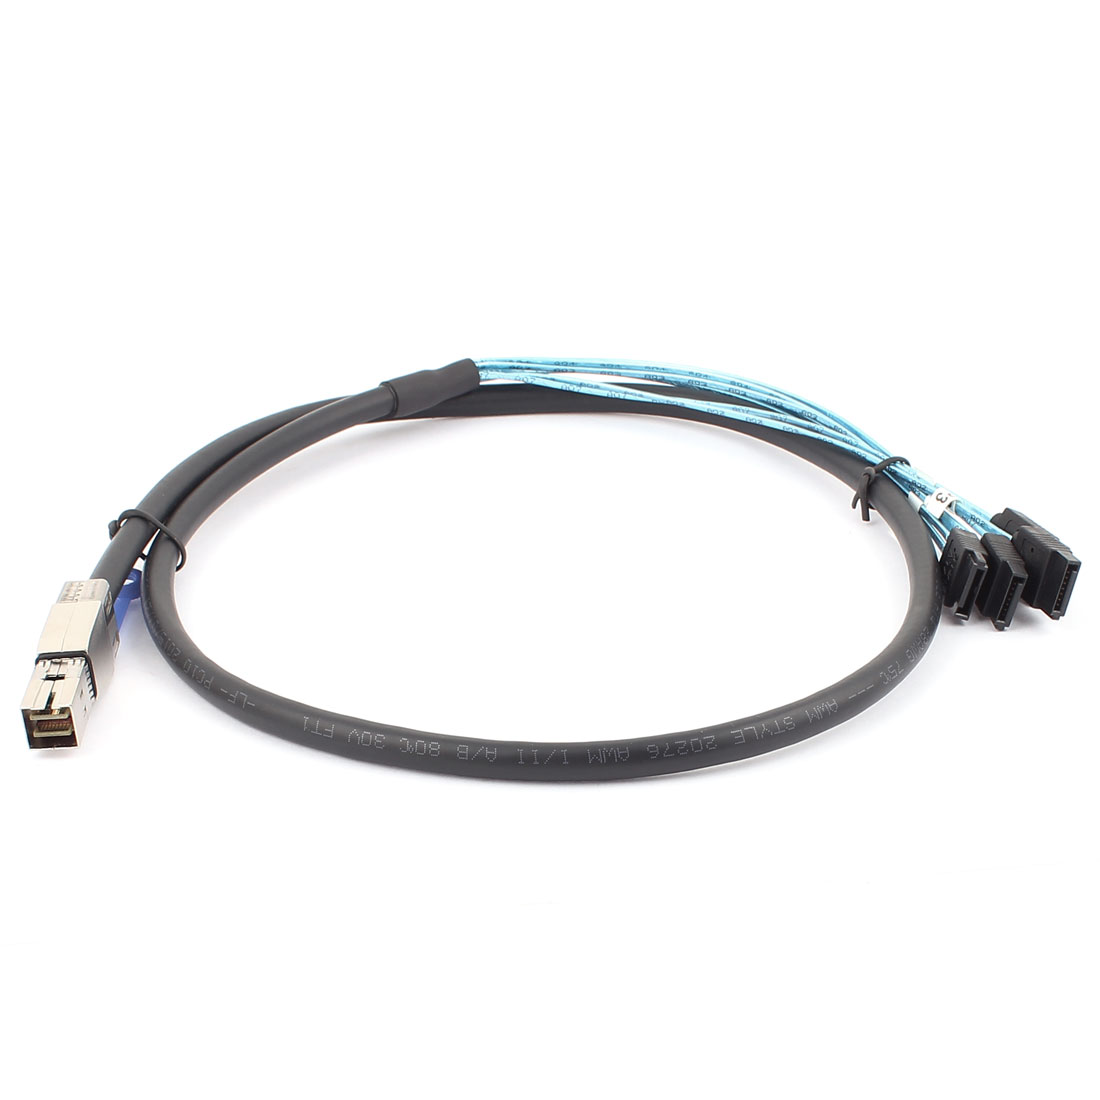 Mini SAS HD 36 Pin SFF-8644 to 4 x SATA Data Cable Cord 1M 3.3ft Long